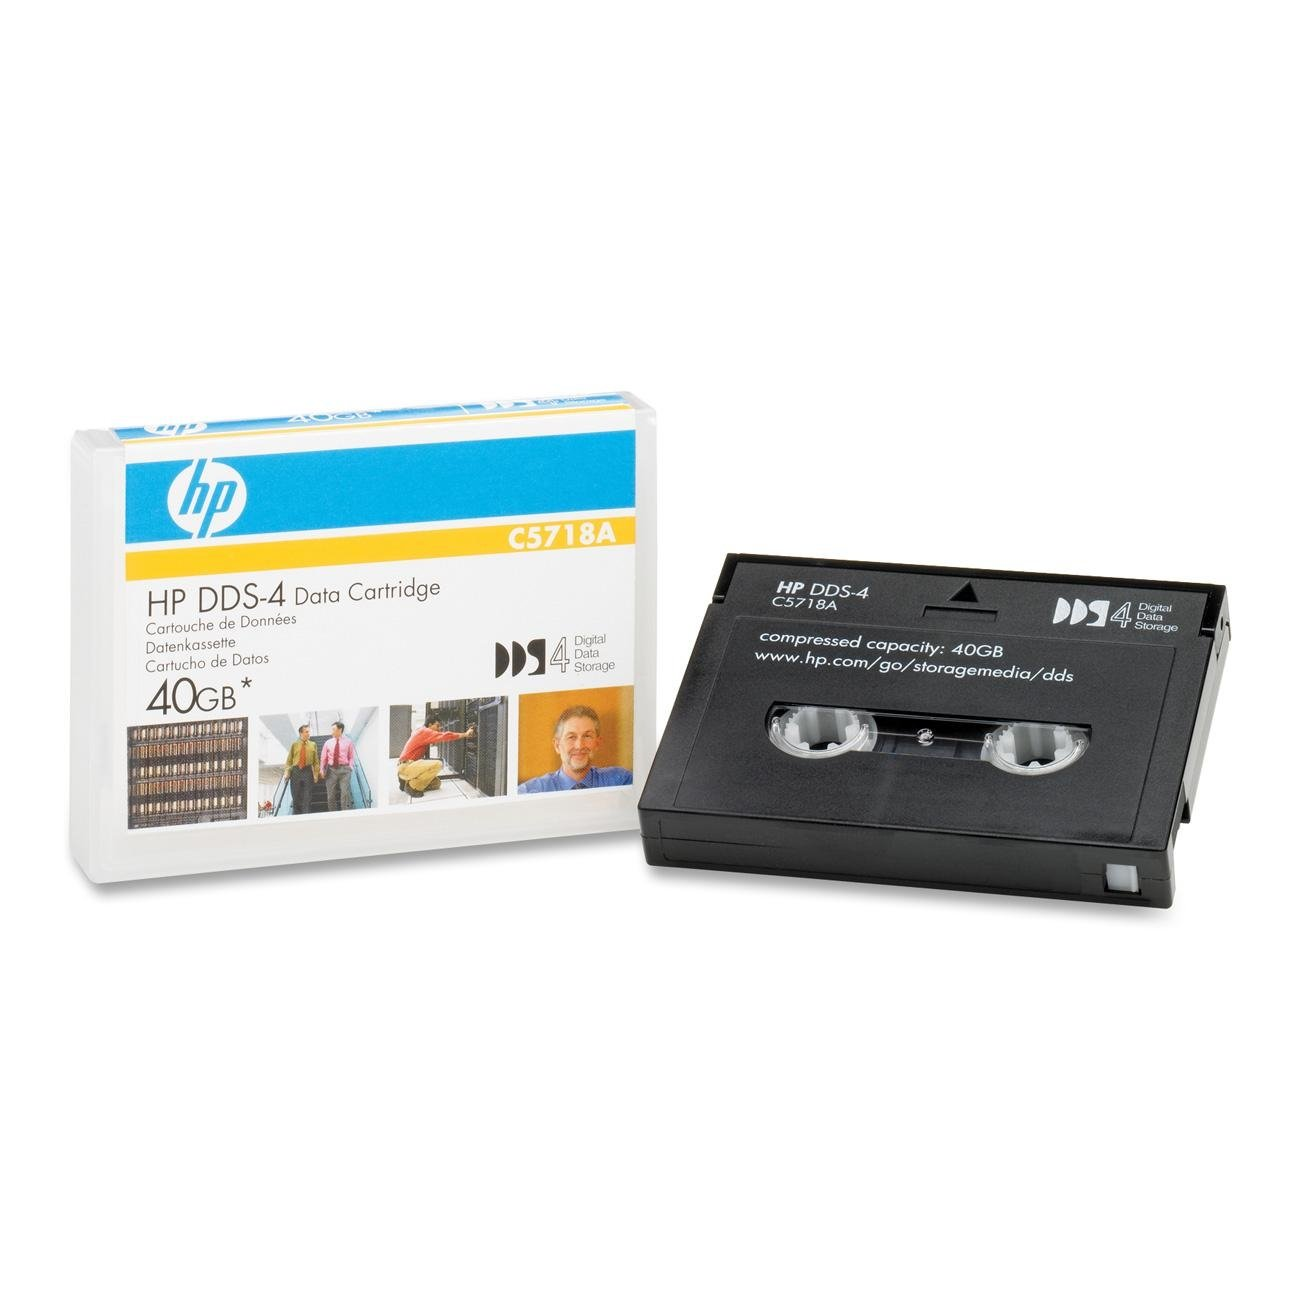 Data Cartridge HP DDS 40GB C5718A